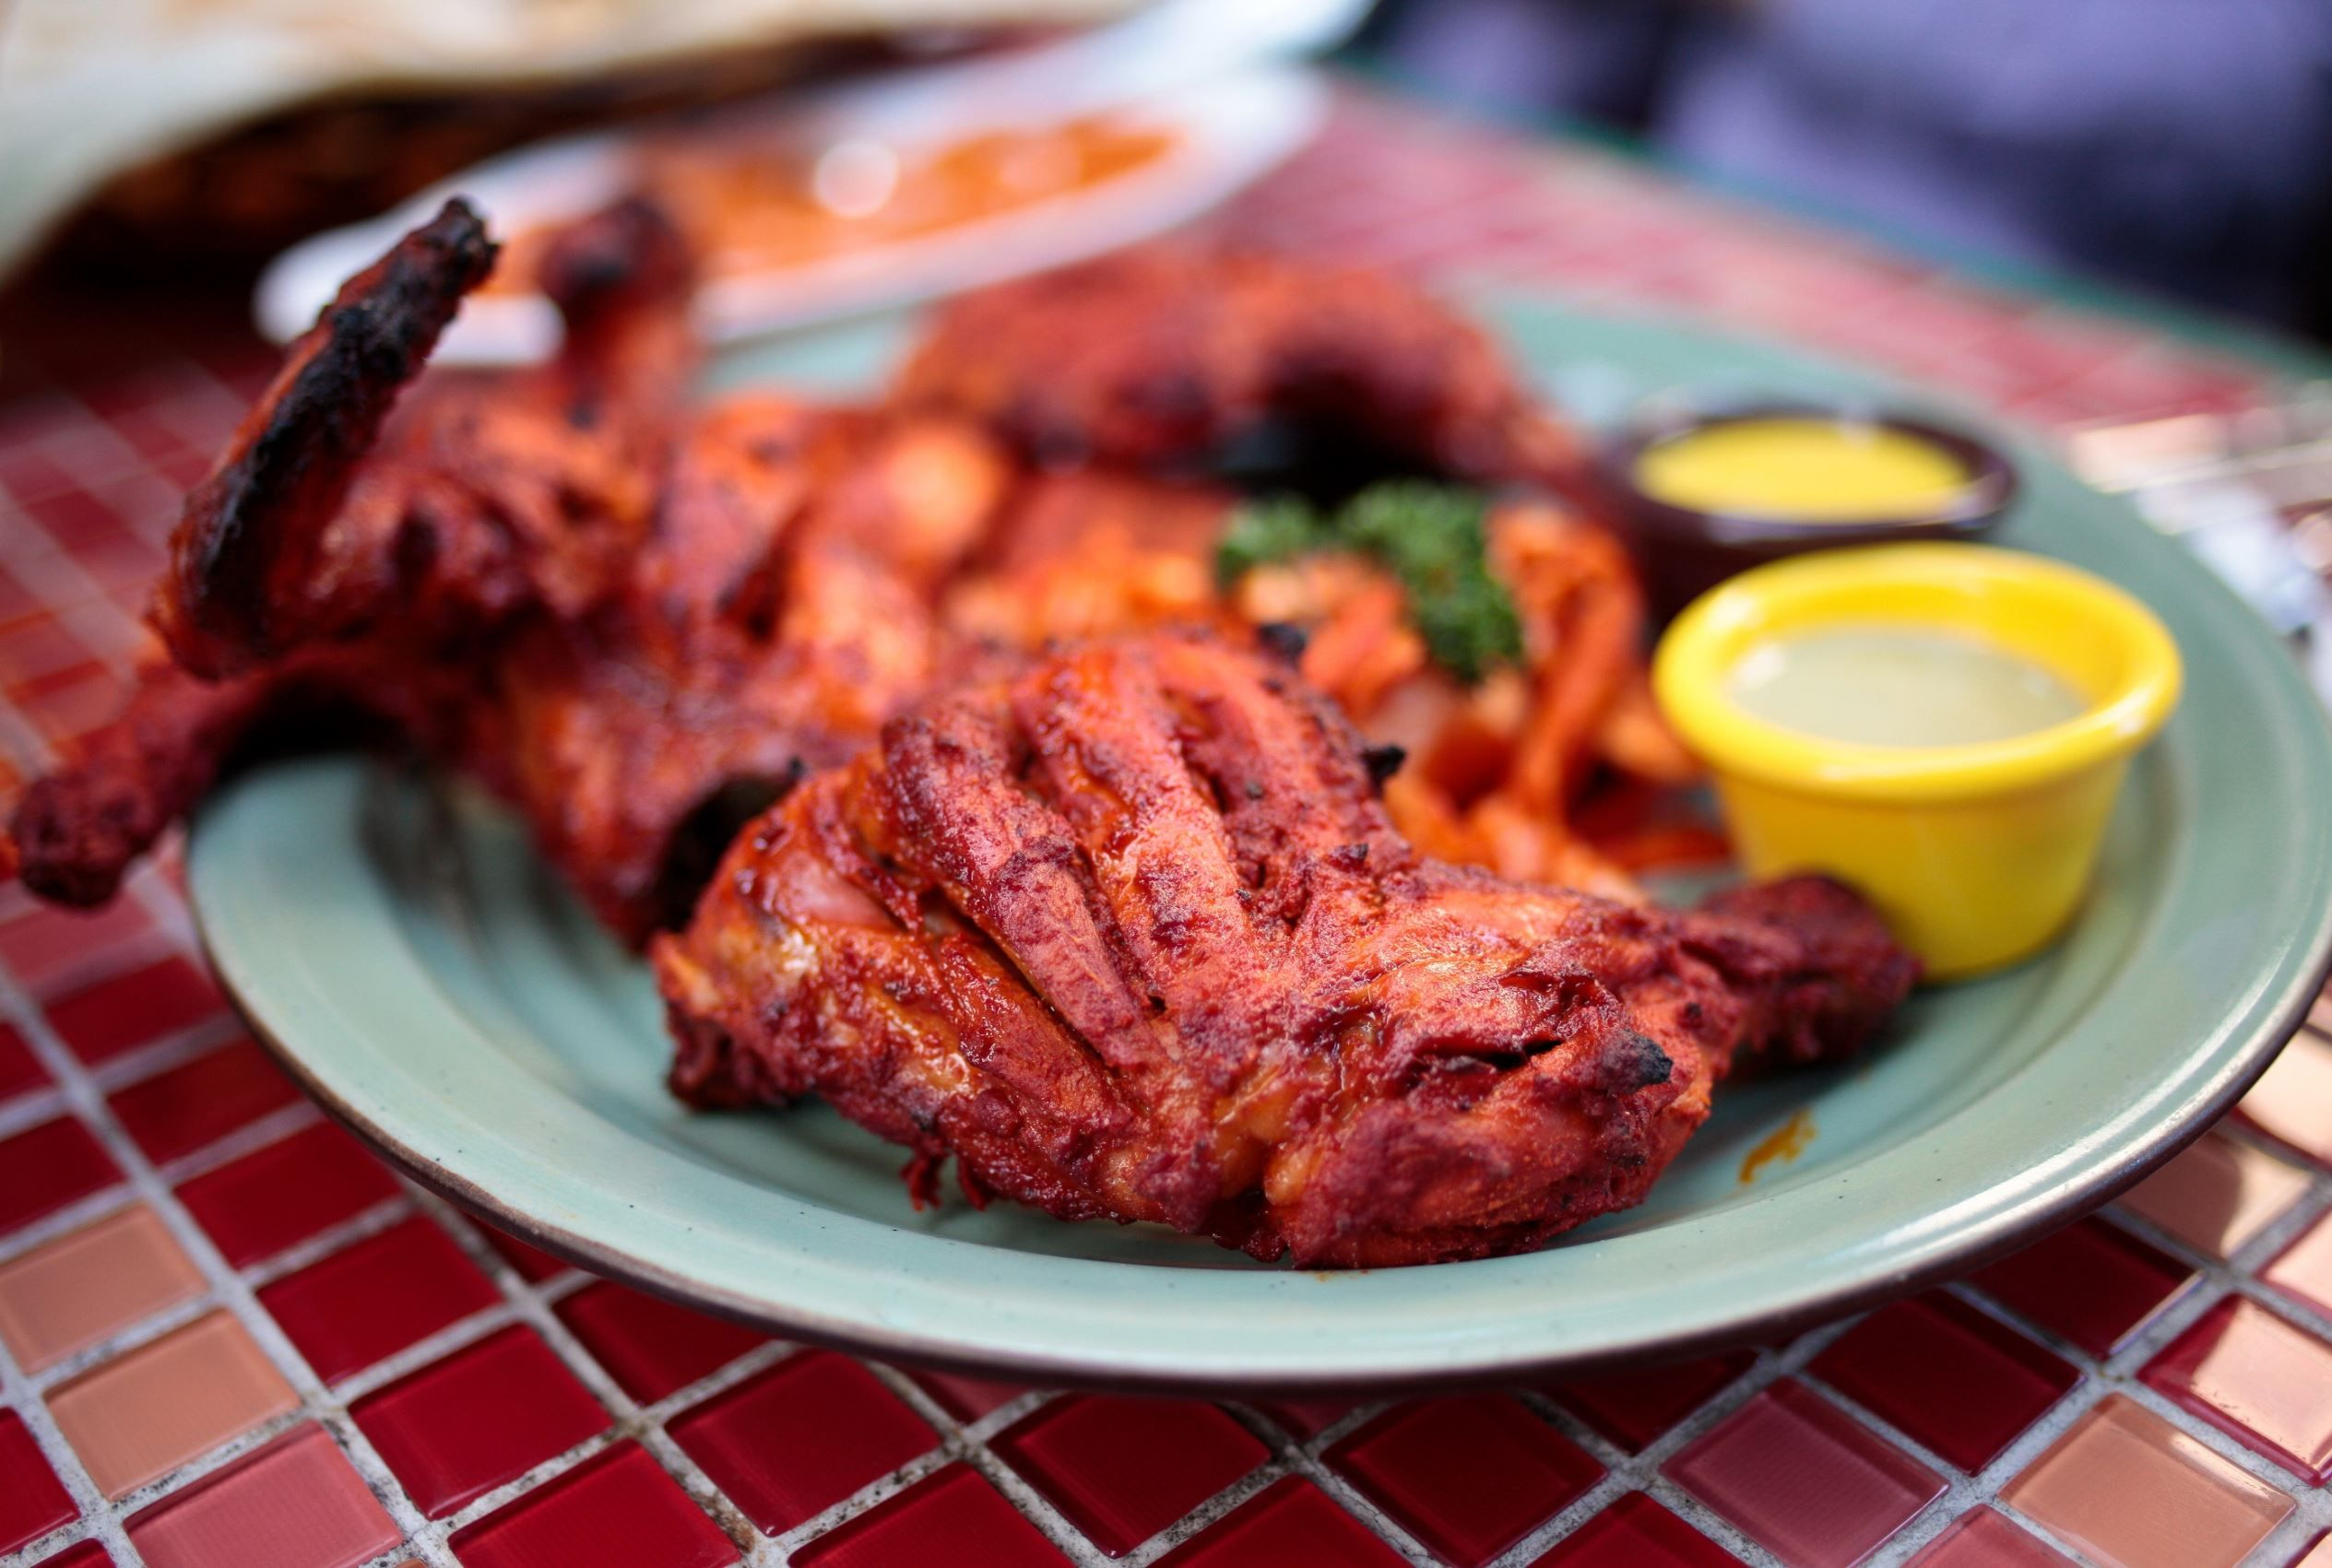 Tandoori chicken (India) Cooked in a clay oven called tandoor, it is roasted chicken marinated in yogurt and seasoned with turmeric and red chilli powder